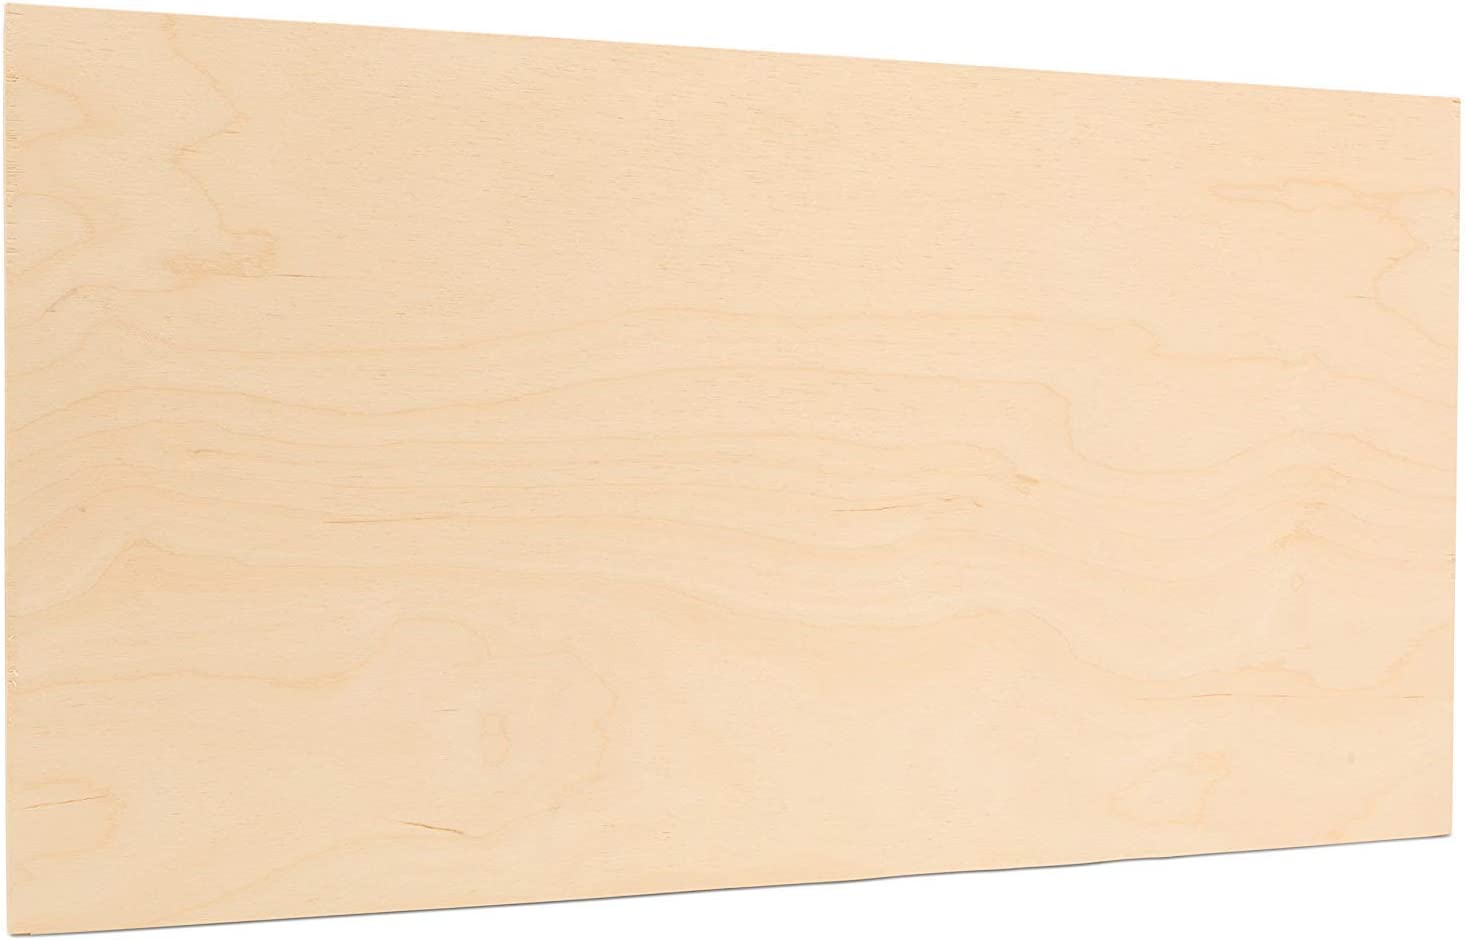 3mm 1/8 x 12 x 20 Inch Premium Baltic Birch Plywood B/BB Grade, Pack of 20 Flat Sheets by Woodpeckers